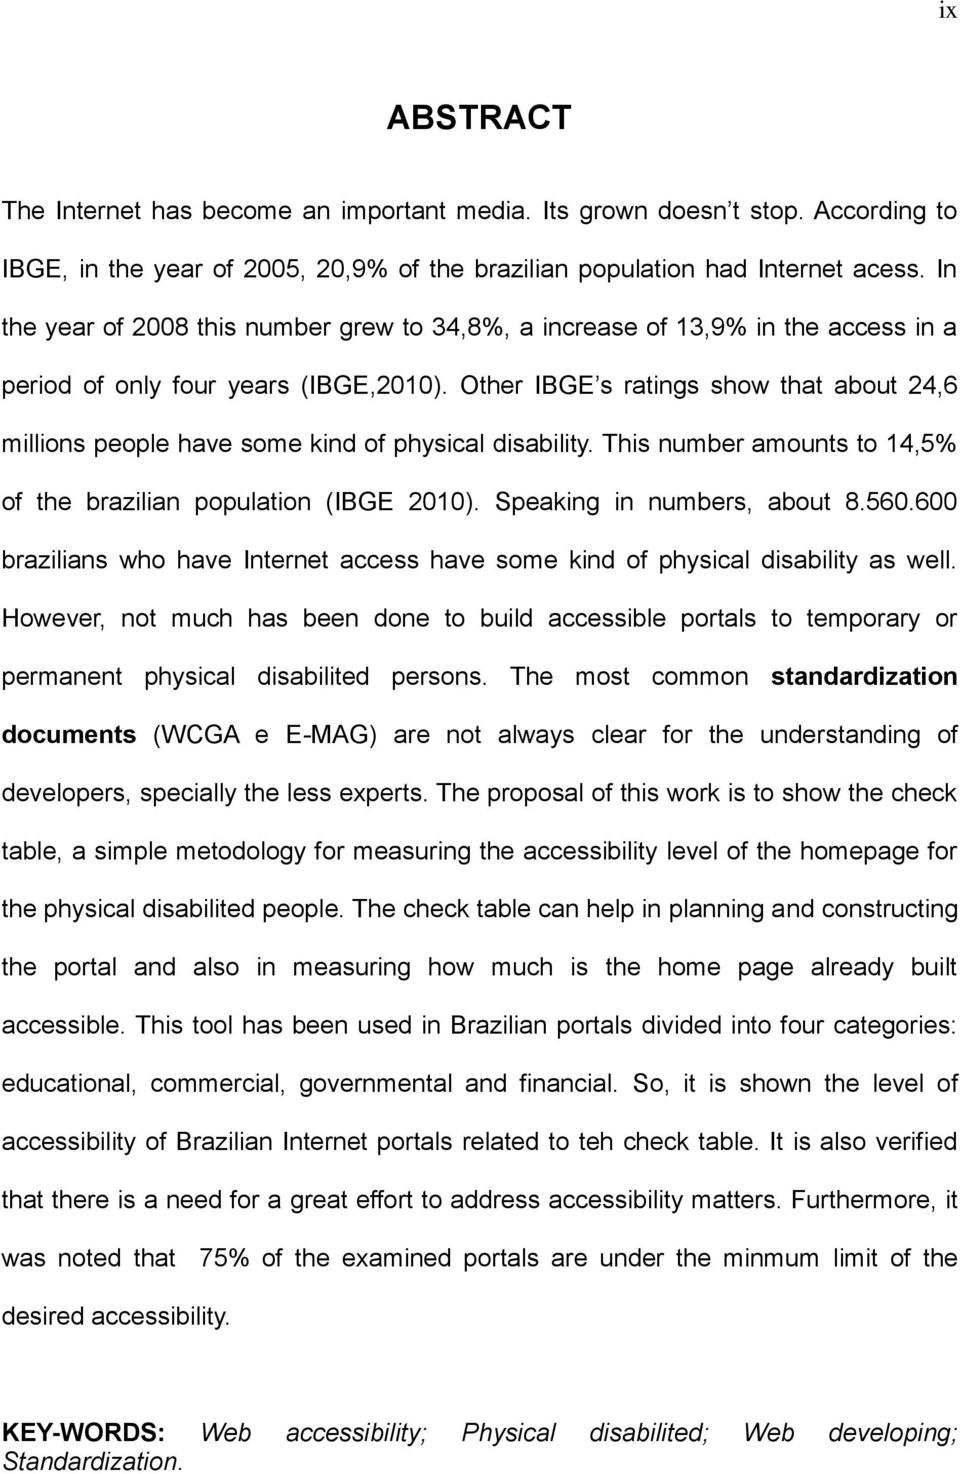 Other IBGE s ratings show that about 24,6 millions people have some kind of physical disability. This number amounts to 14,5% of the brazilian population (IBGE 2010). Speaking in numbers, about 8.560.